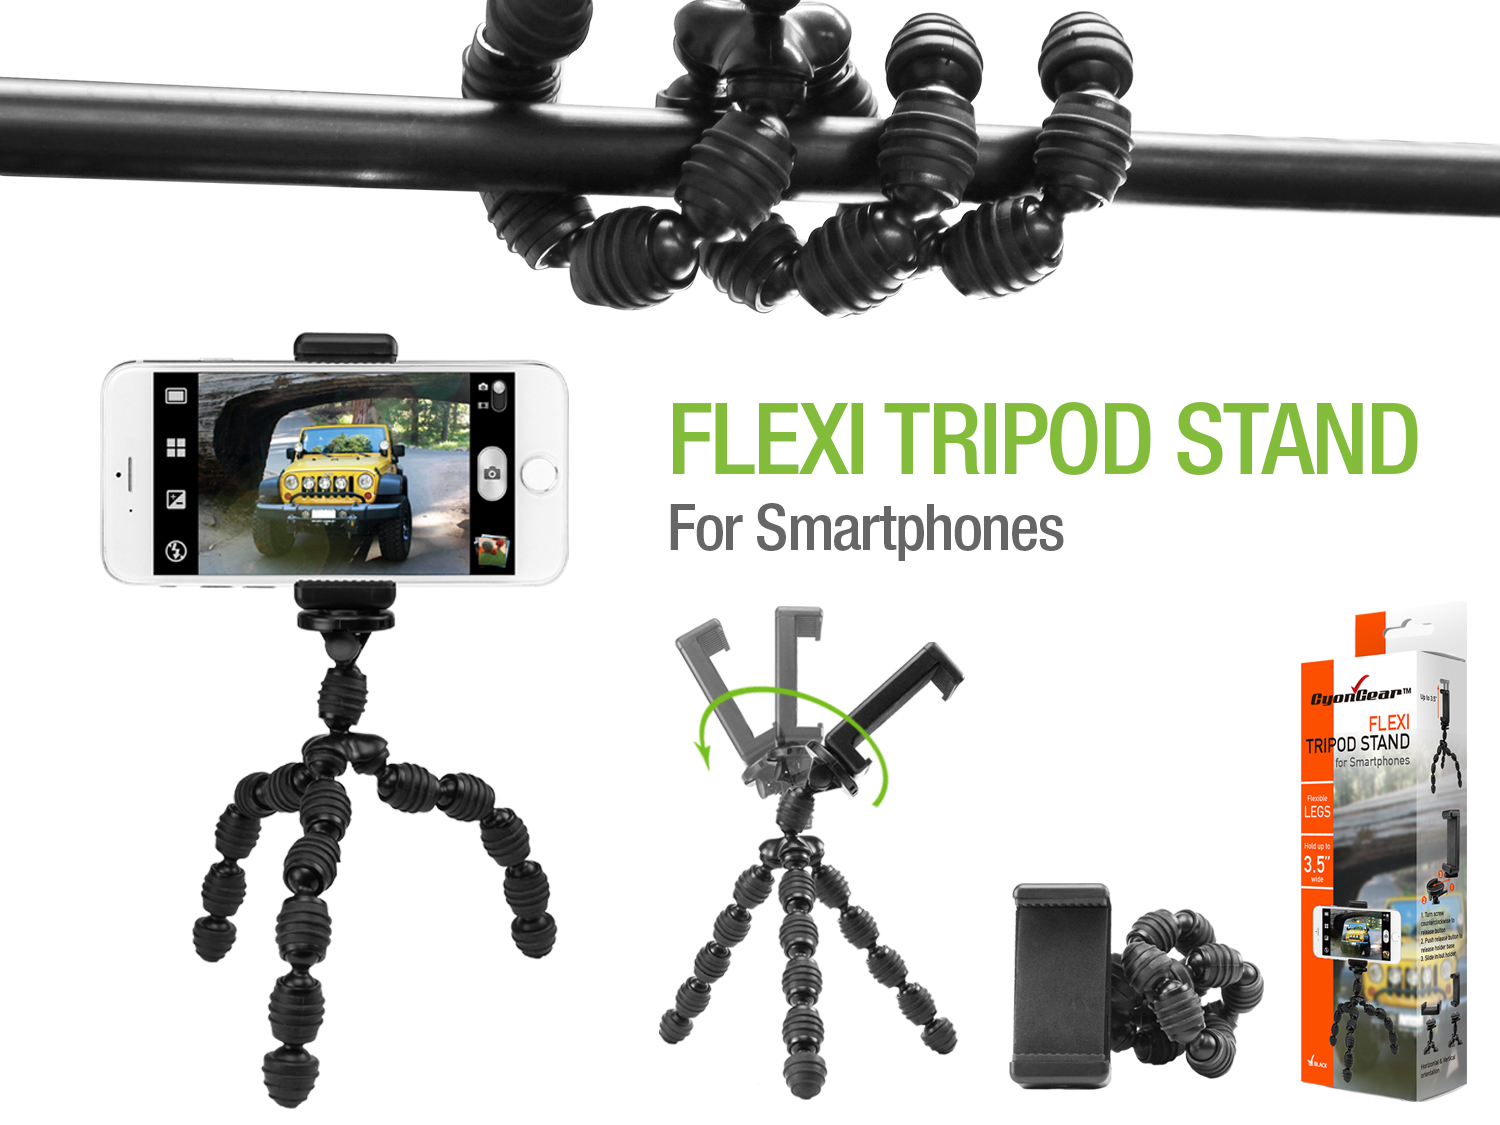 CyonGear Flexible Tripod Stand, Durable, Portable And Adjustable Tripod  Stand With Rubberized Grips For